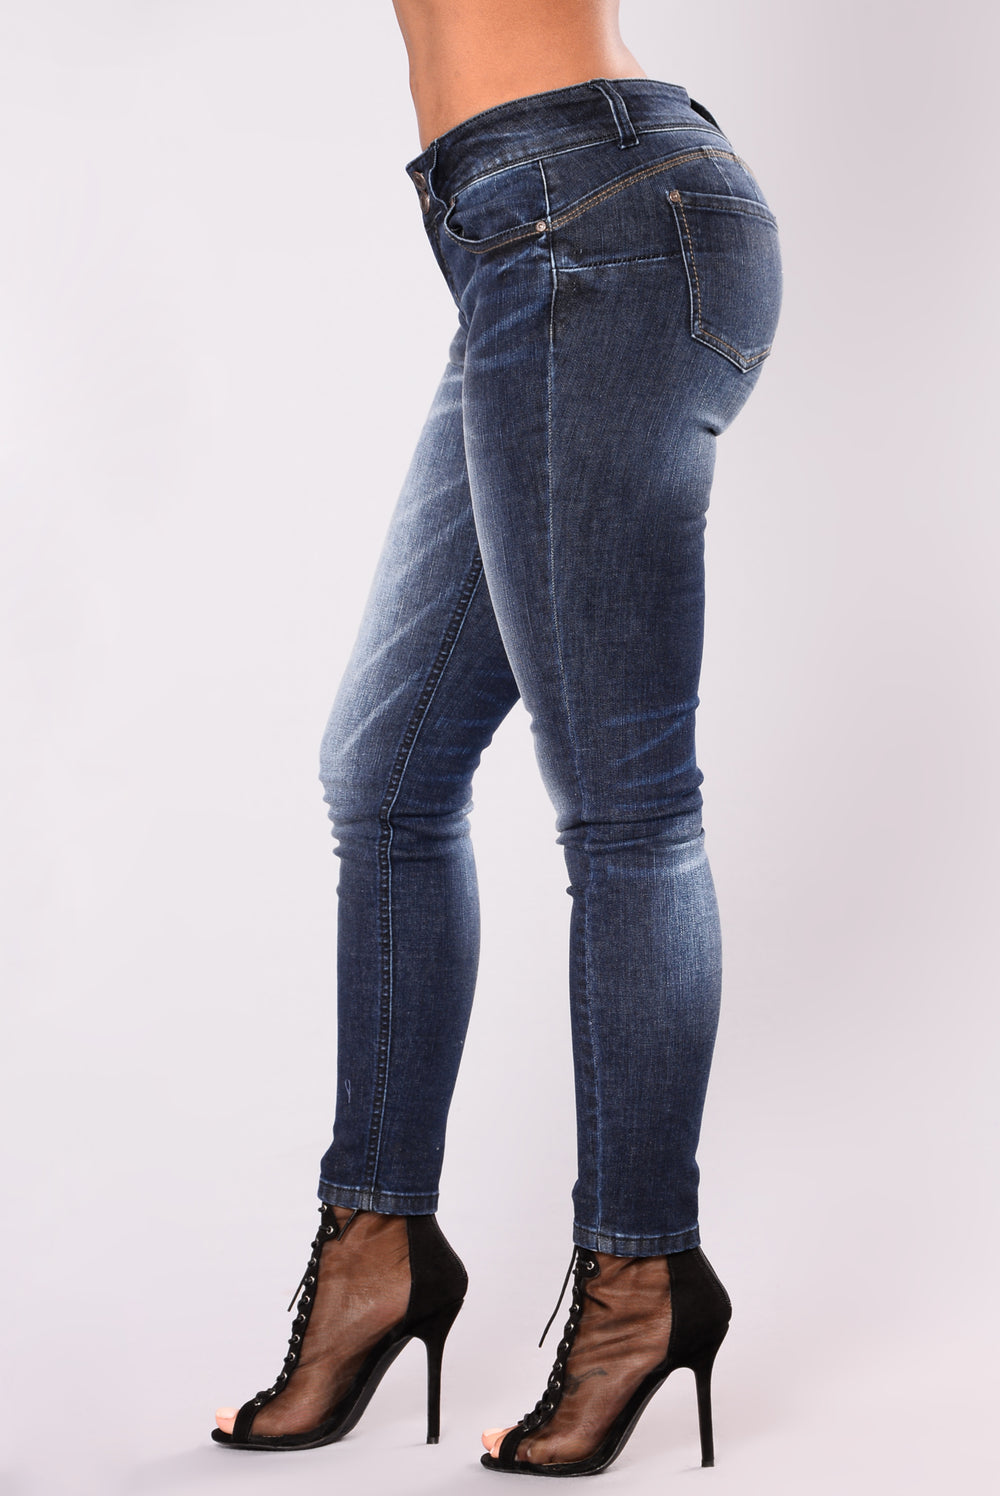 Good Habits Booty Lifting Jeans - Dark